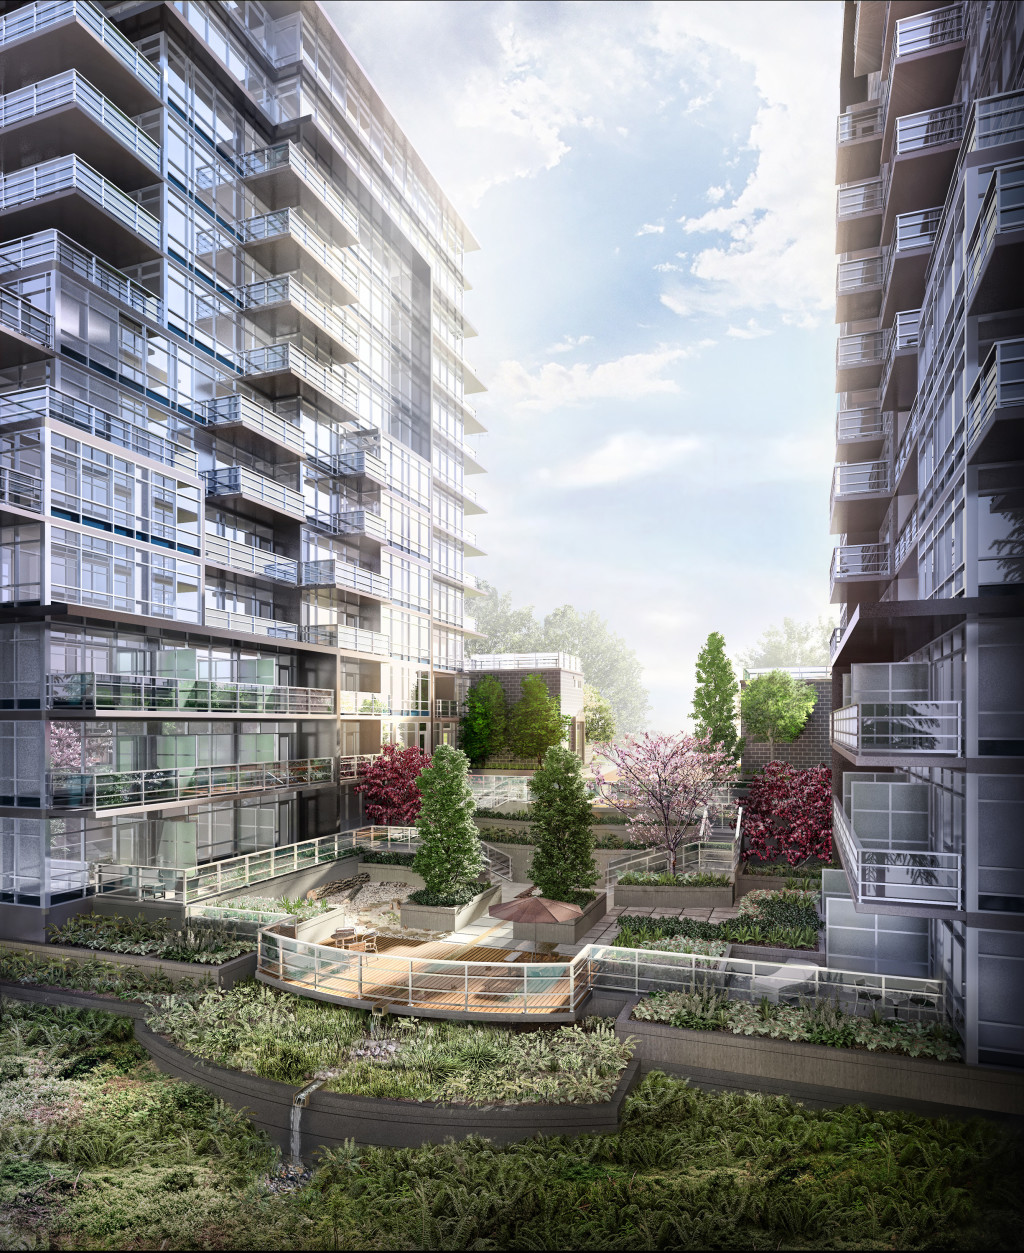 Altitude Final Rendering - Centre Courtyard (Low)